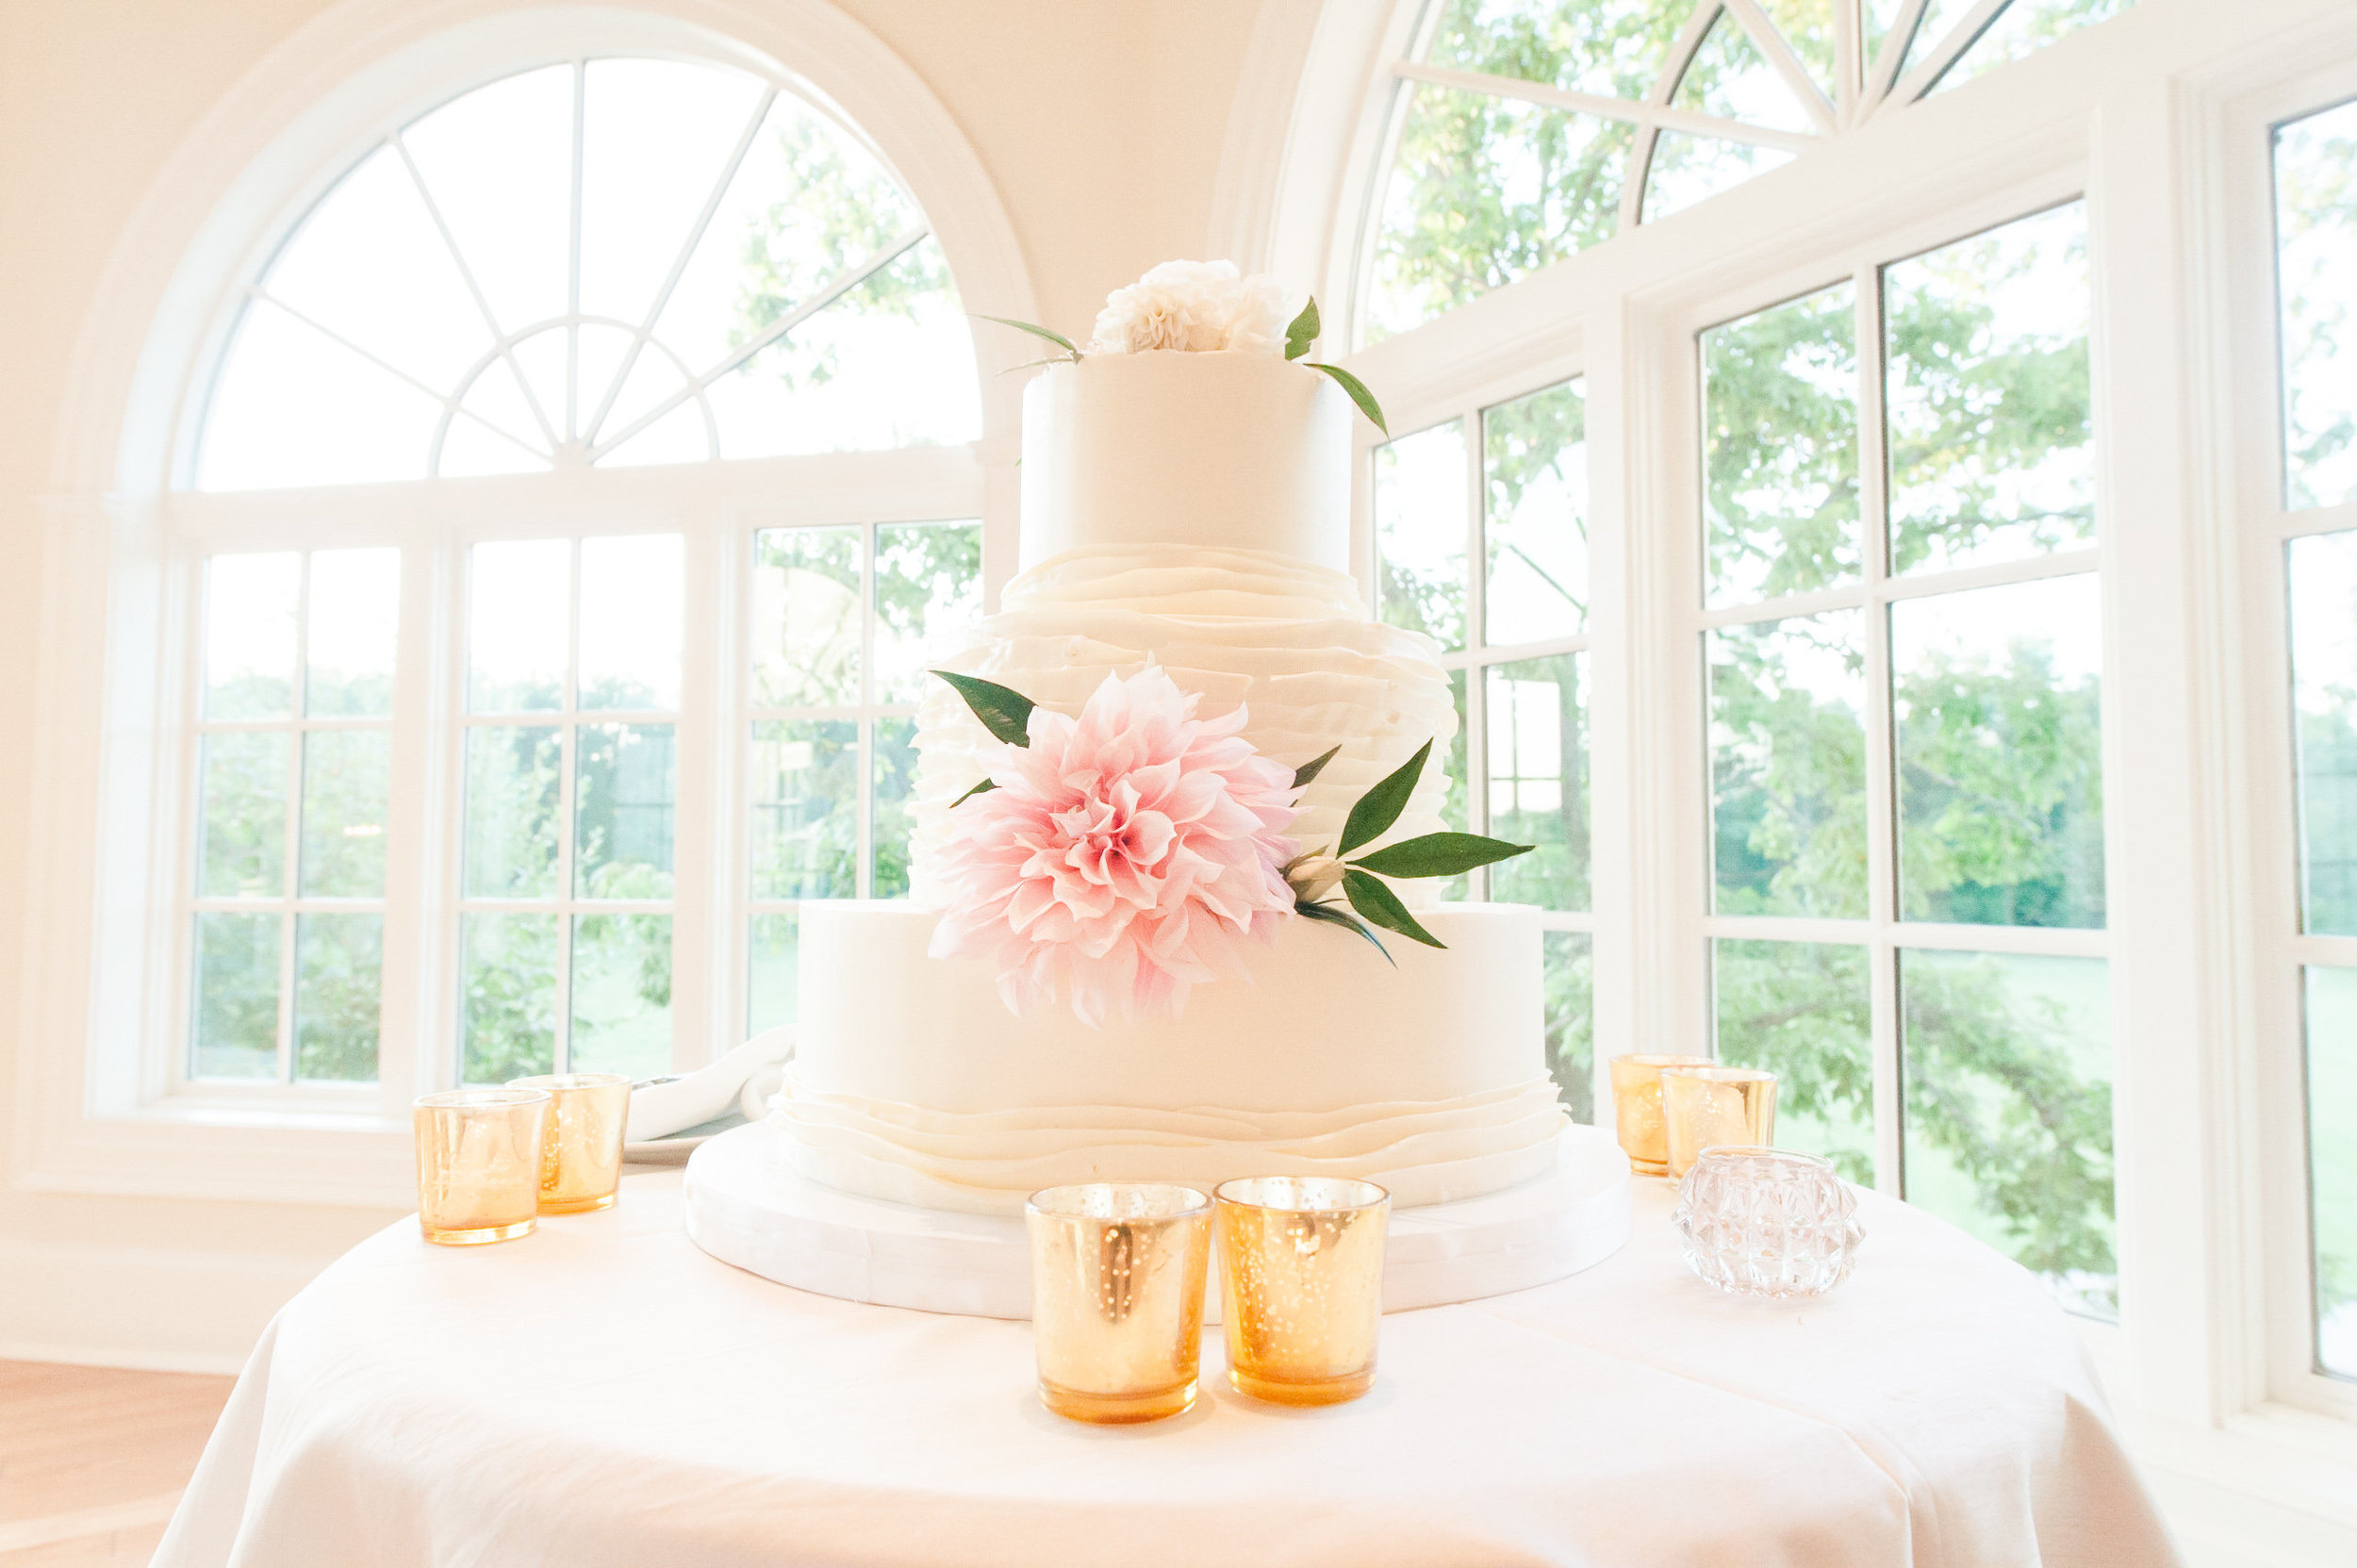 MORAIS VINEYARDS WEDDING A BEYOUTIFUL FETE EVENTS & DESIGN  - VIRGINIA AND DC WEDDING PLANNER 13.jpg